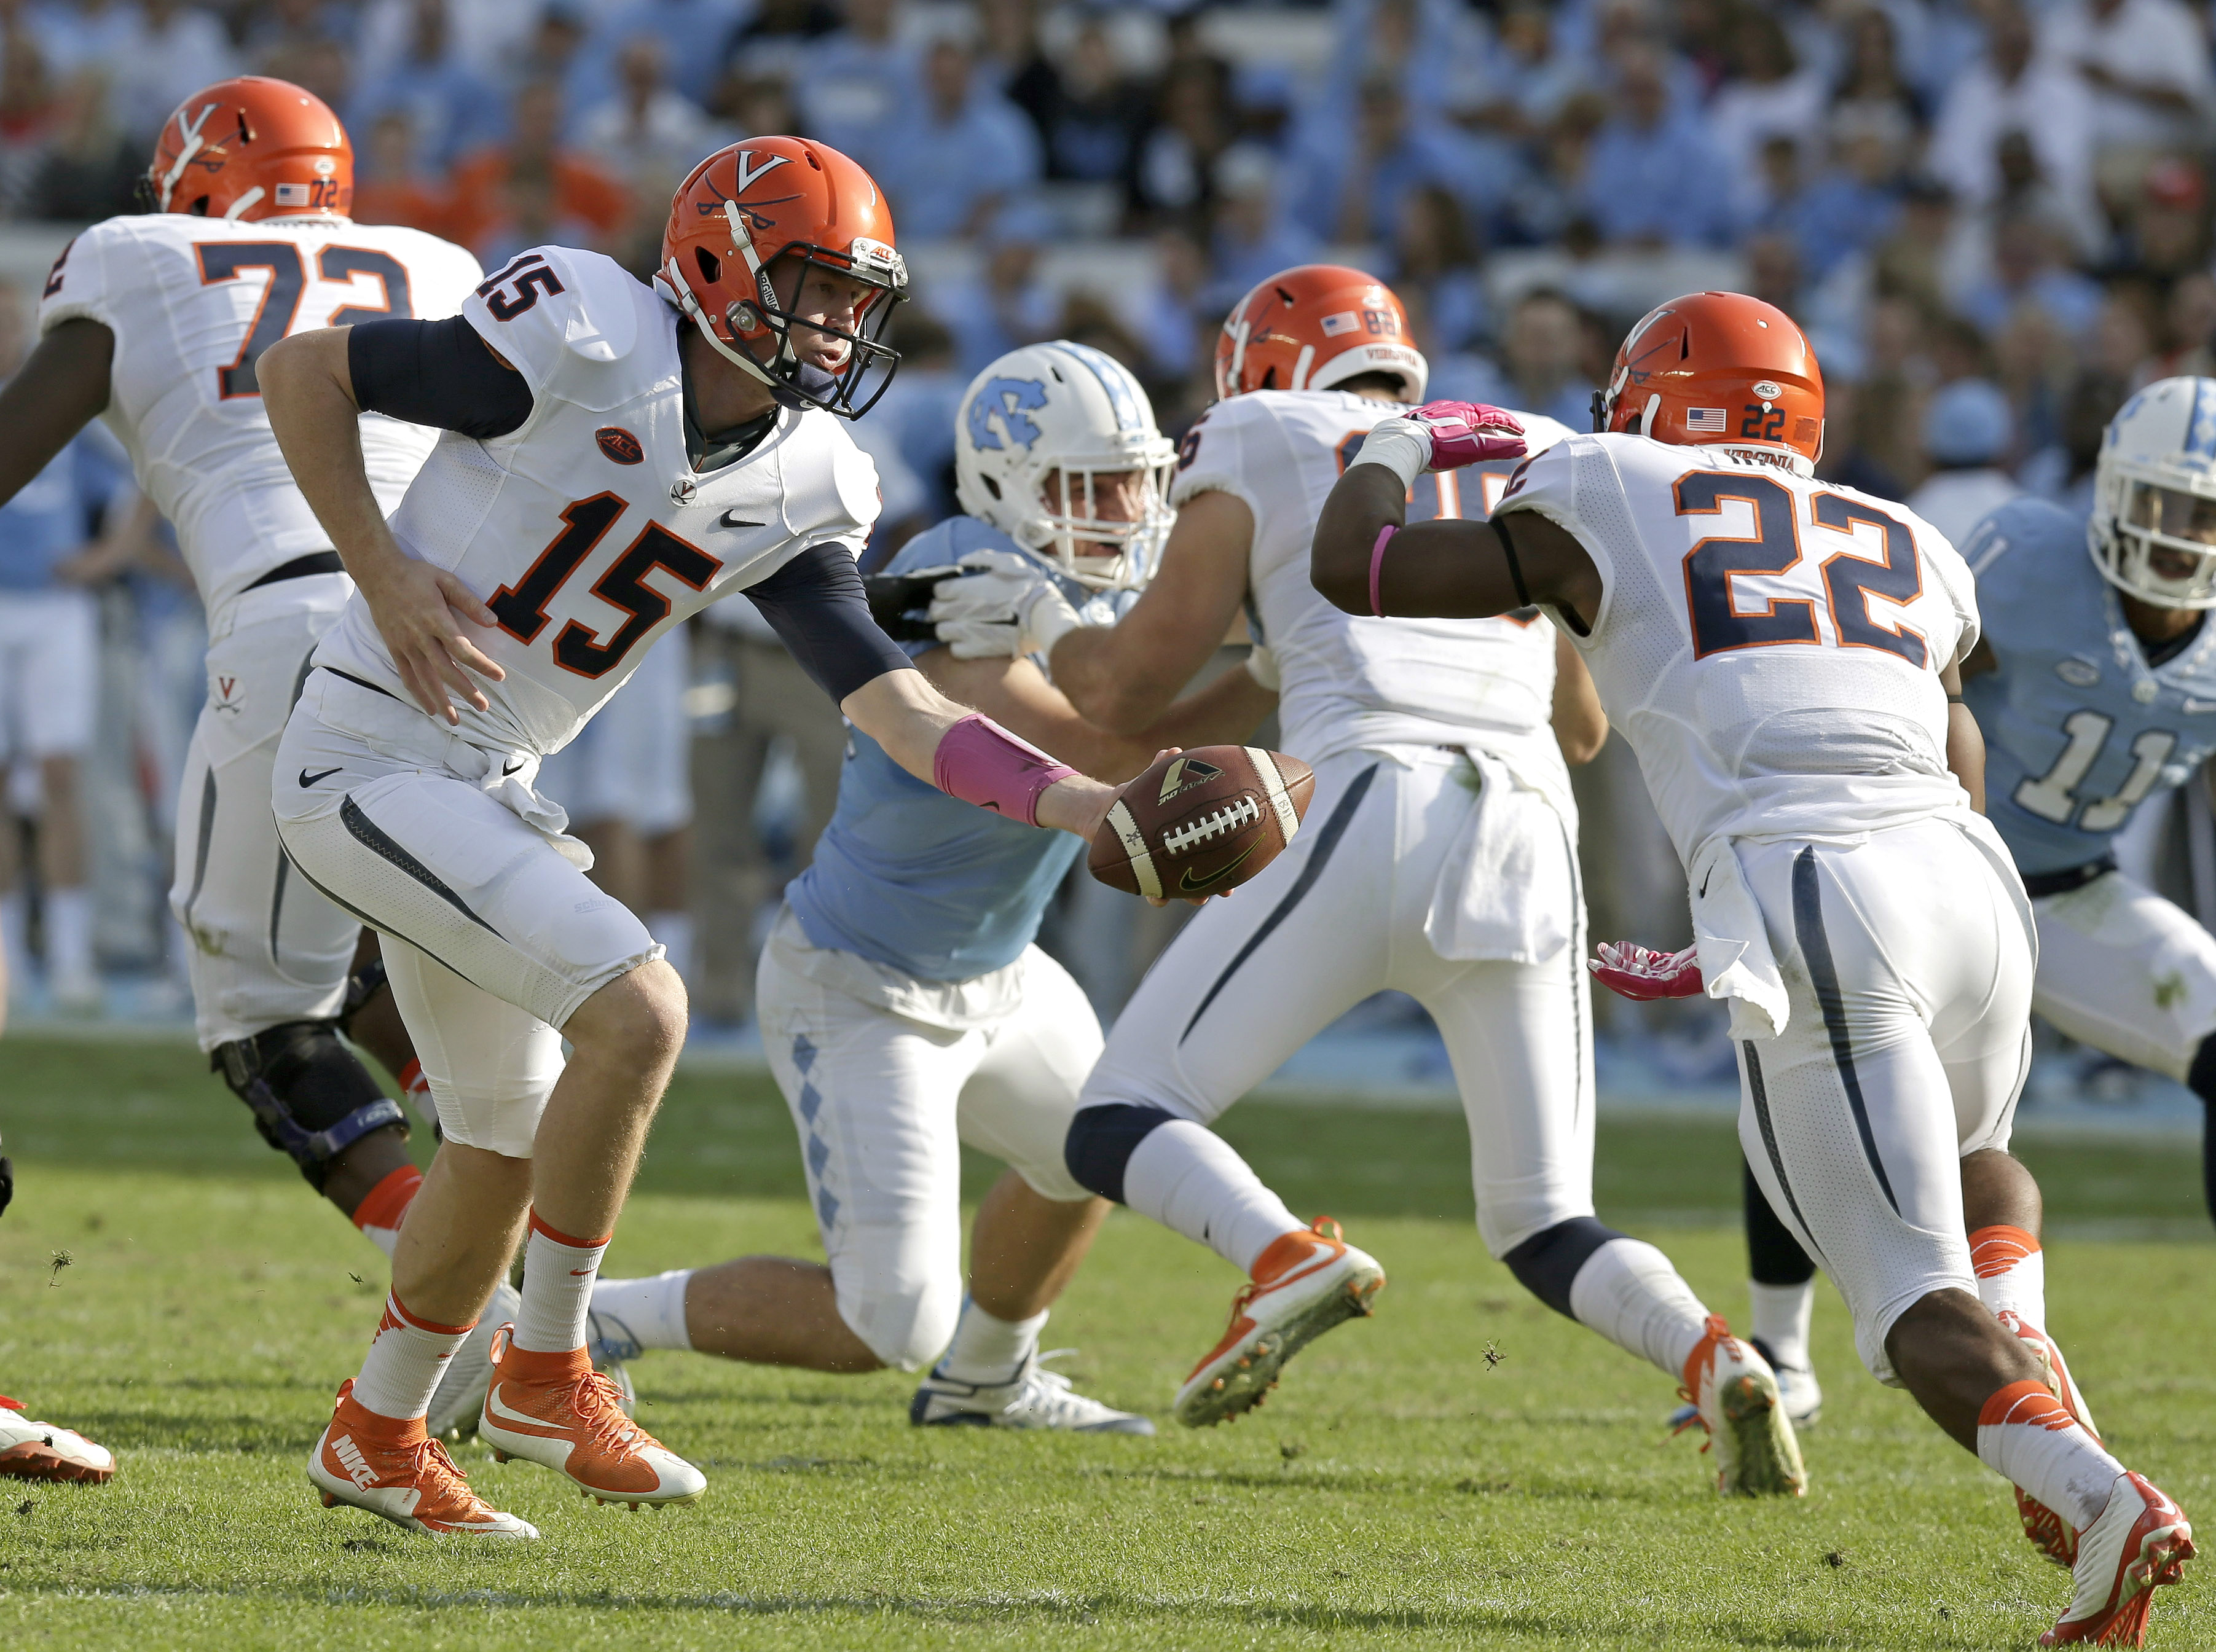 Virginia quarterback Matt Johns (15) hands off to Daniel Hamm (22) during the first half of an NCAA college football game against North Carolina in Chapel Hill, N.C., Saturday, Oct. 24, 2015. (AP Photo/Gerry Broome)